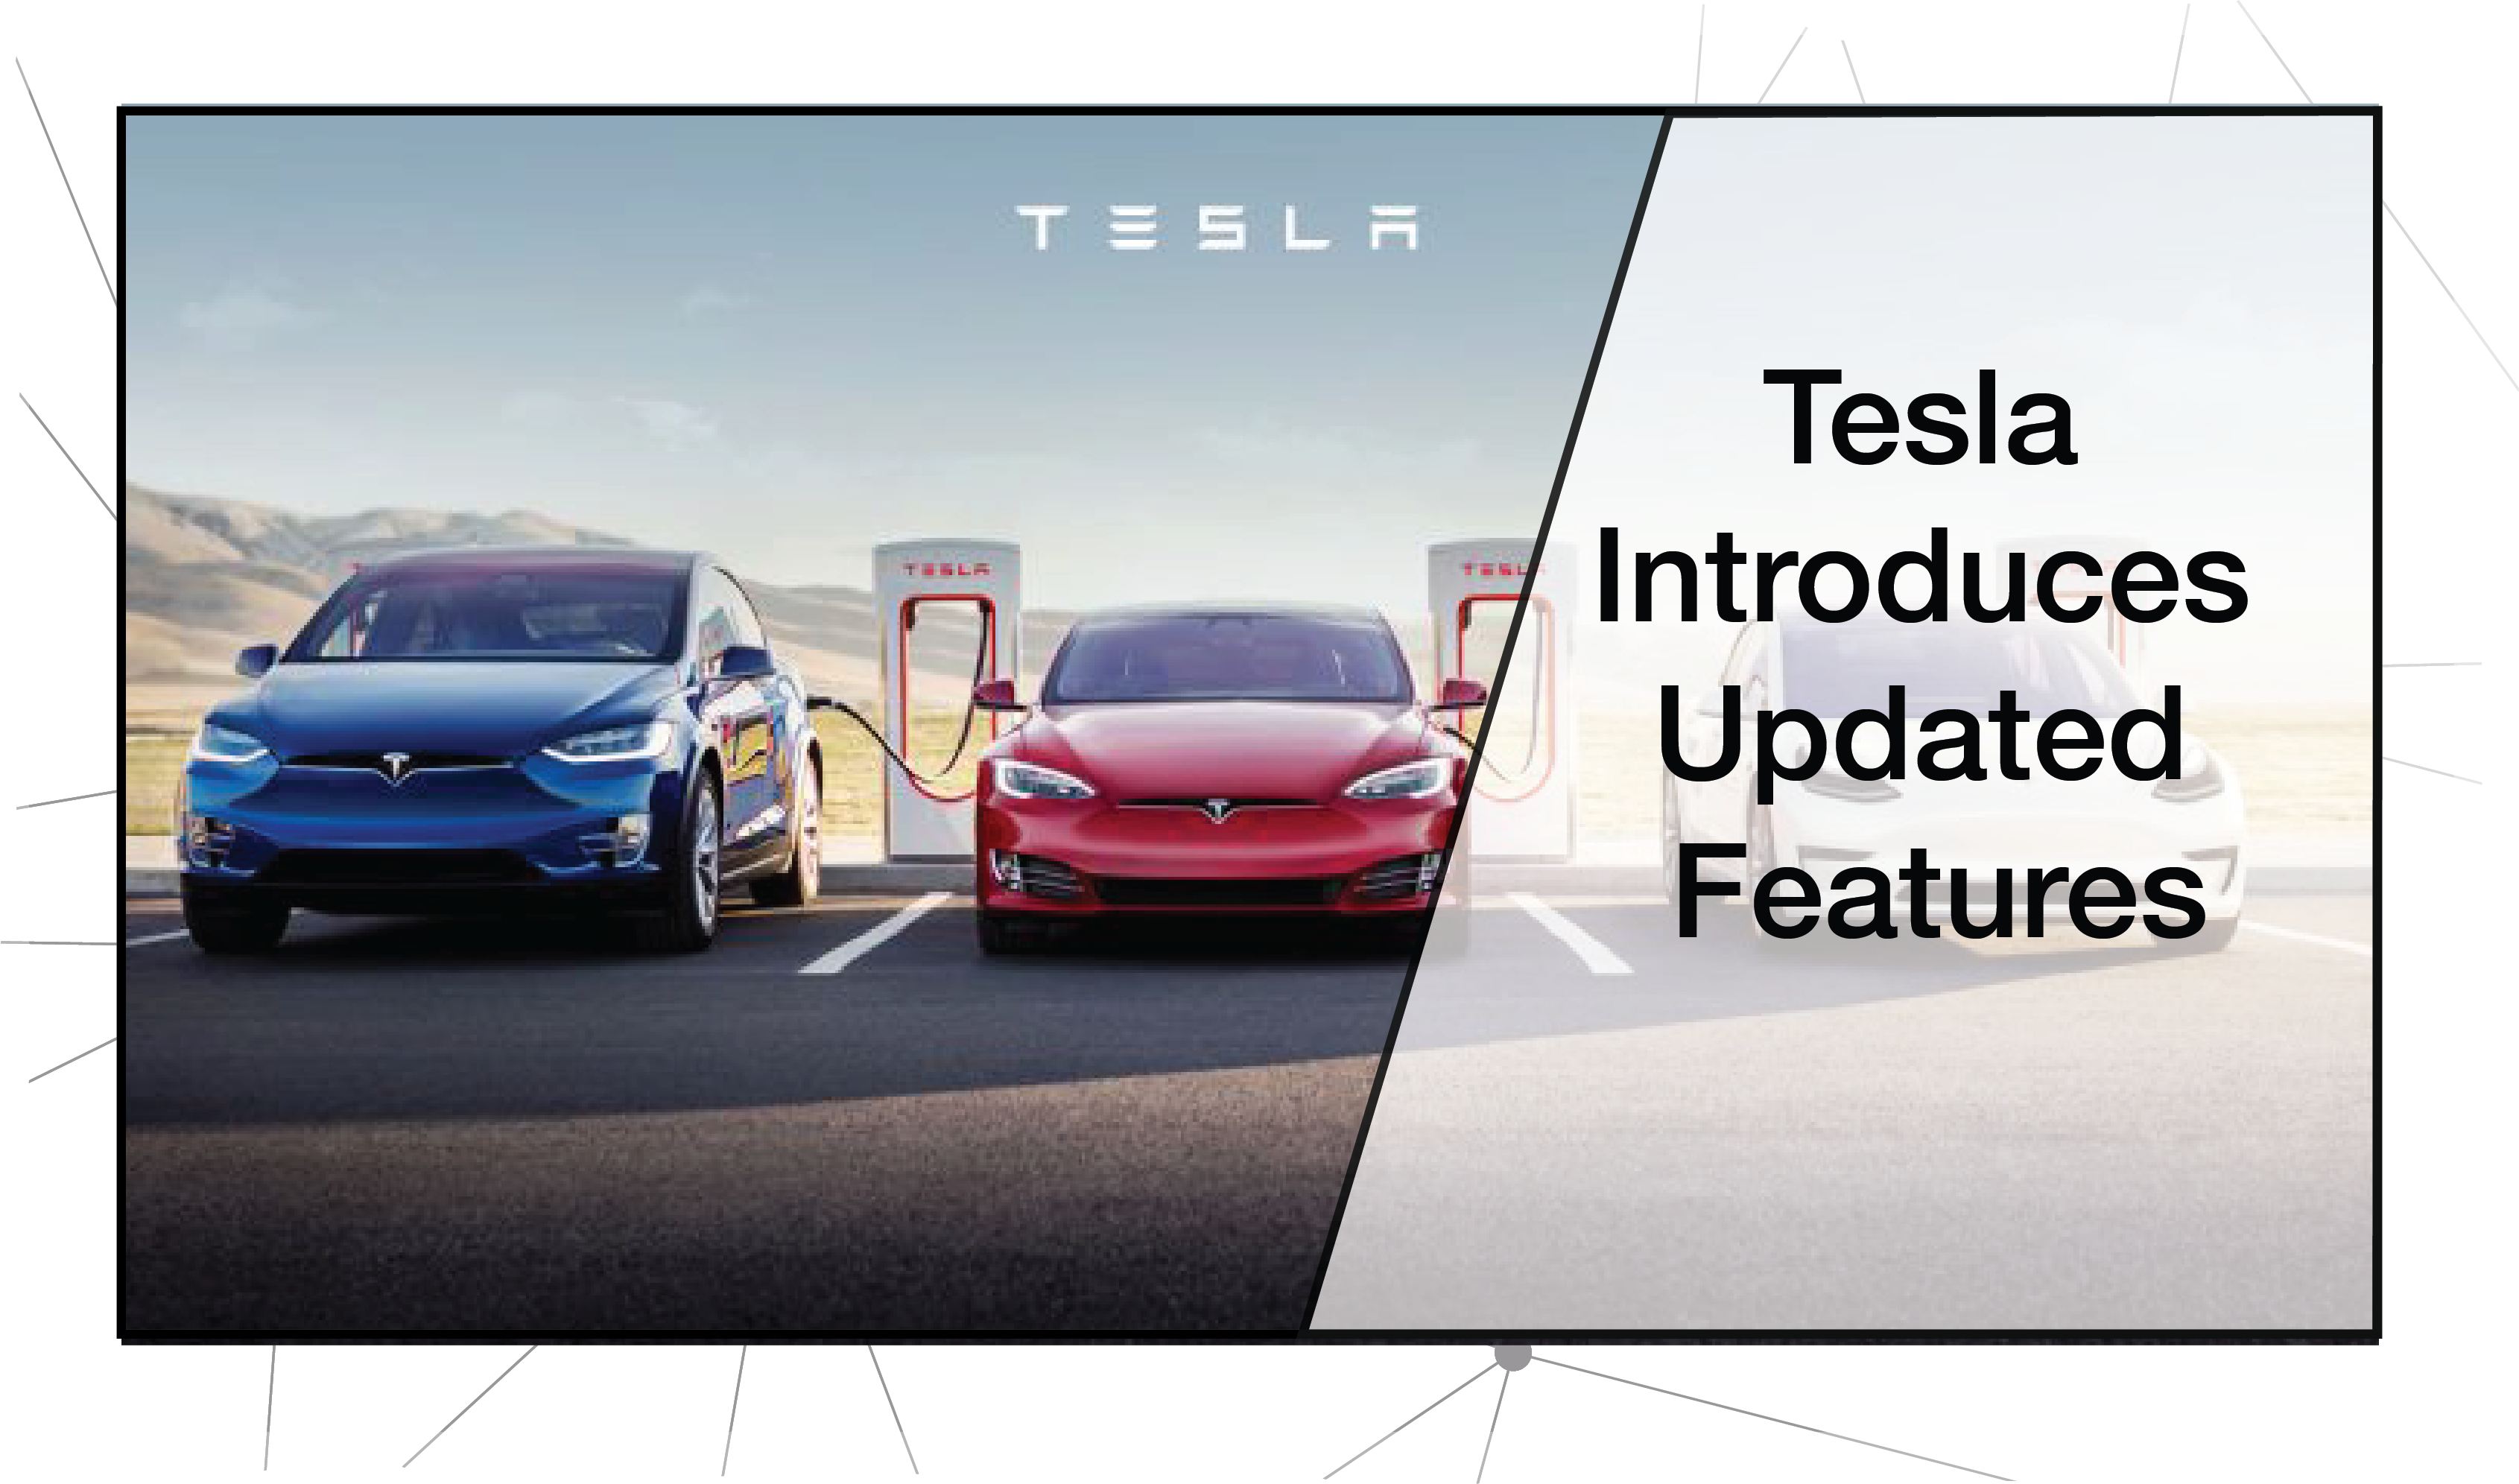 Tesla introduces updated features